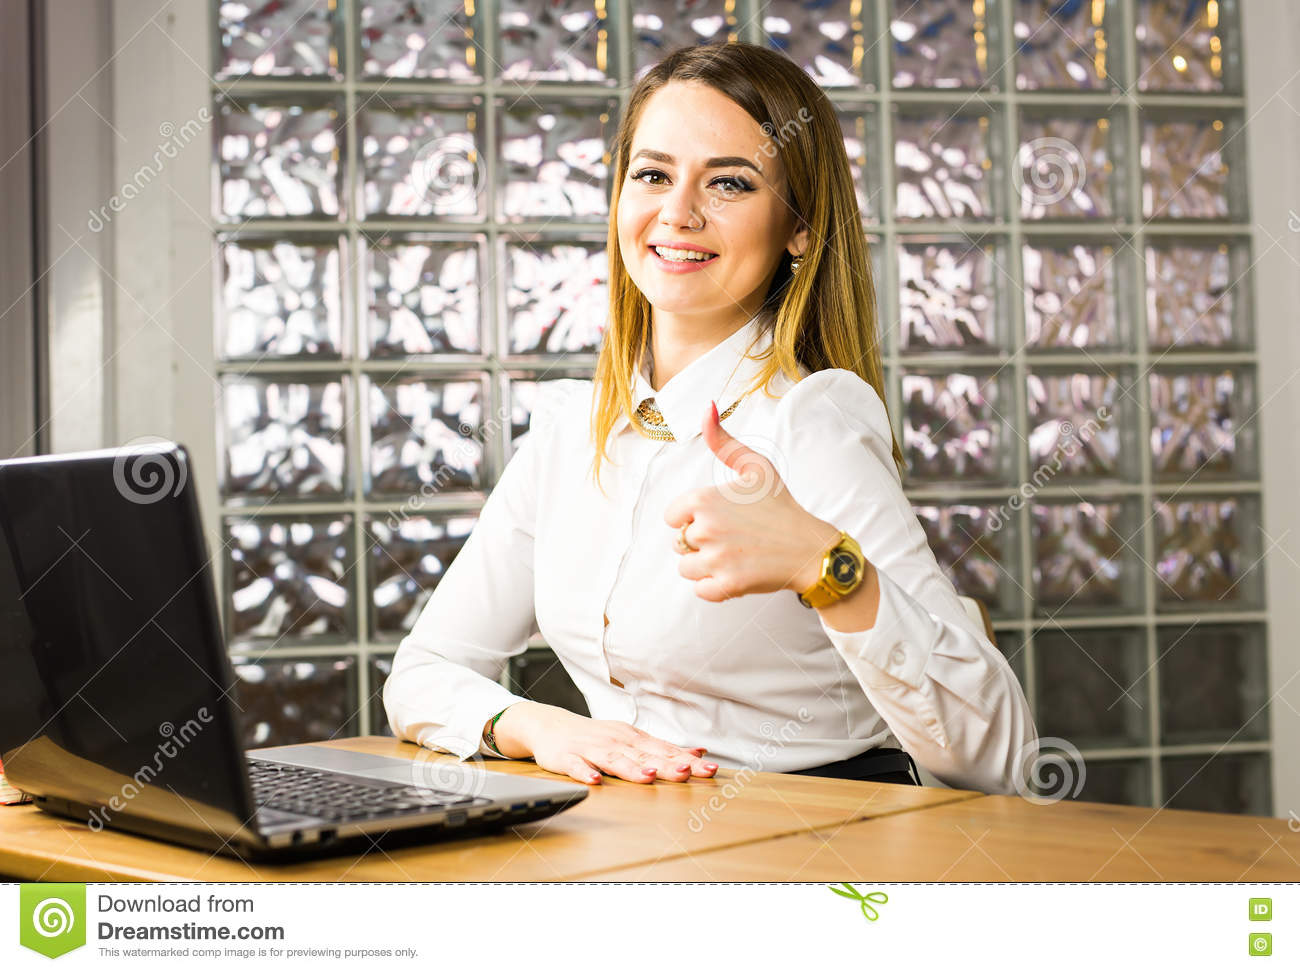 Education, business and technology concept - smiling businesswoman or student showing thumbs up with laptop computer in